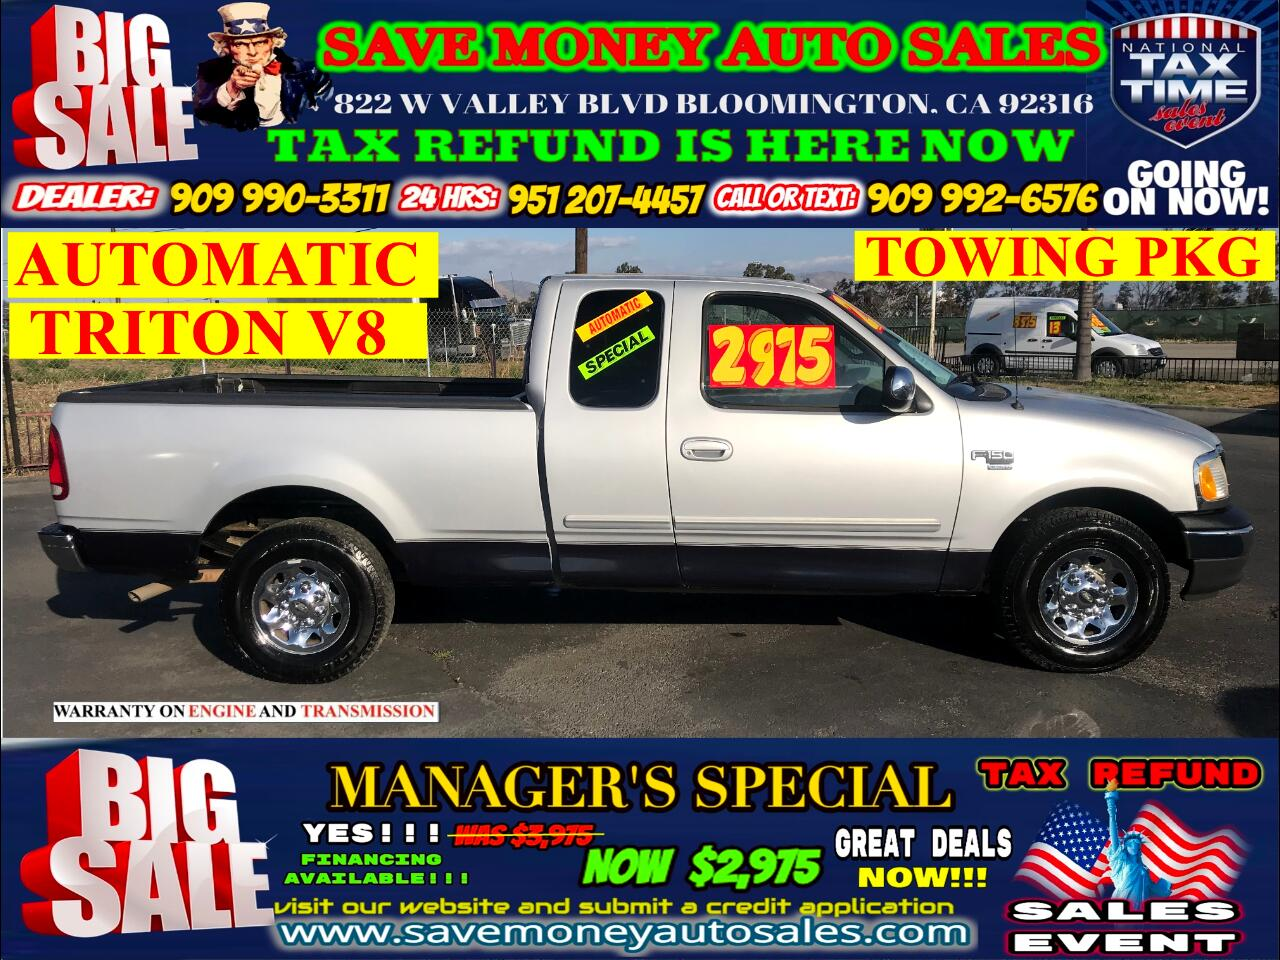 2001 Ford F-150 XLT>V8> AUTOMATIC> TOWING PKG INCLUDED